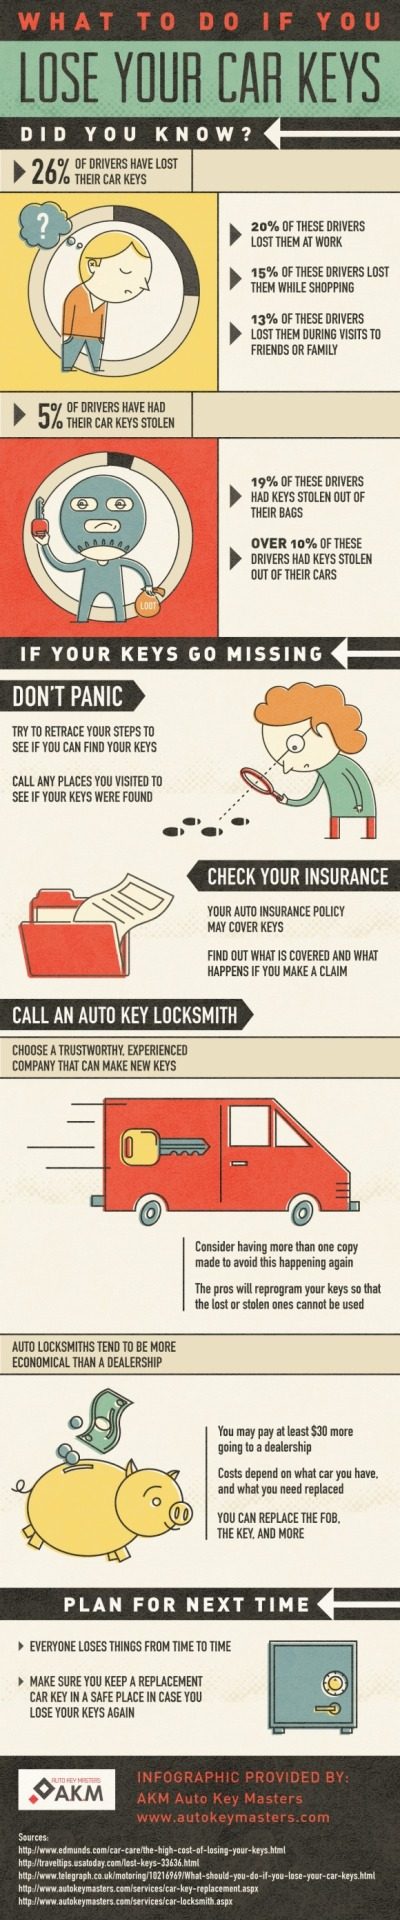 26% of drivers have lost their car keys. 20% of these drivers lost them at work, 15% lost them while shopping, and 13% lost them during visits to friends or family. See what you should do if you ever...